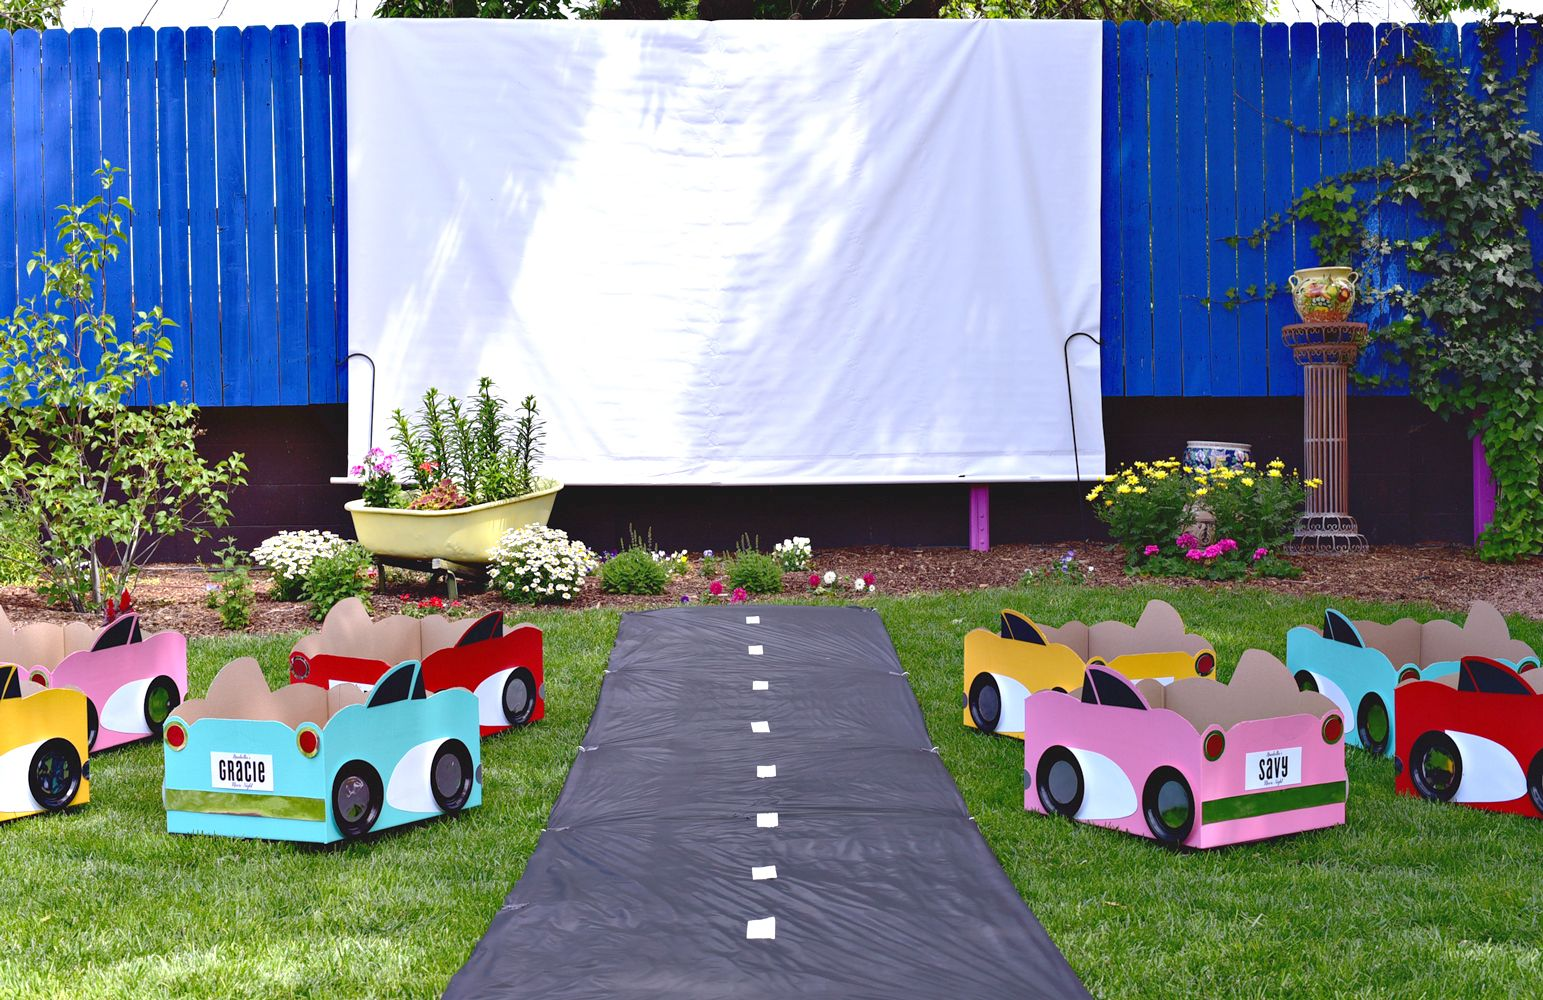 Drive in movie theater for a movie night birthday party